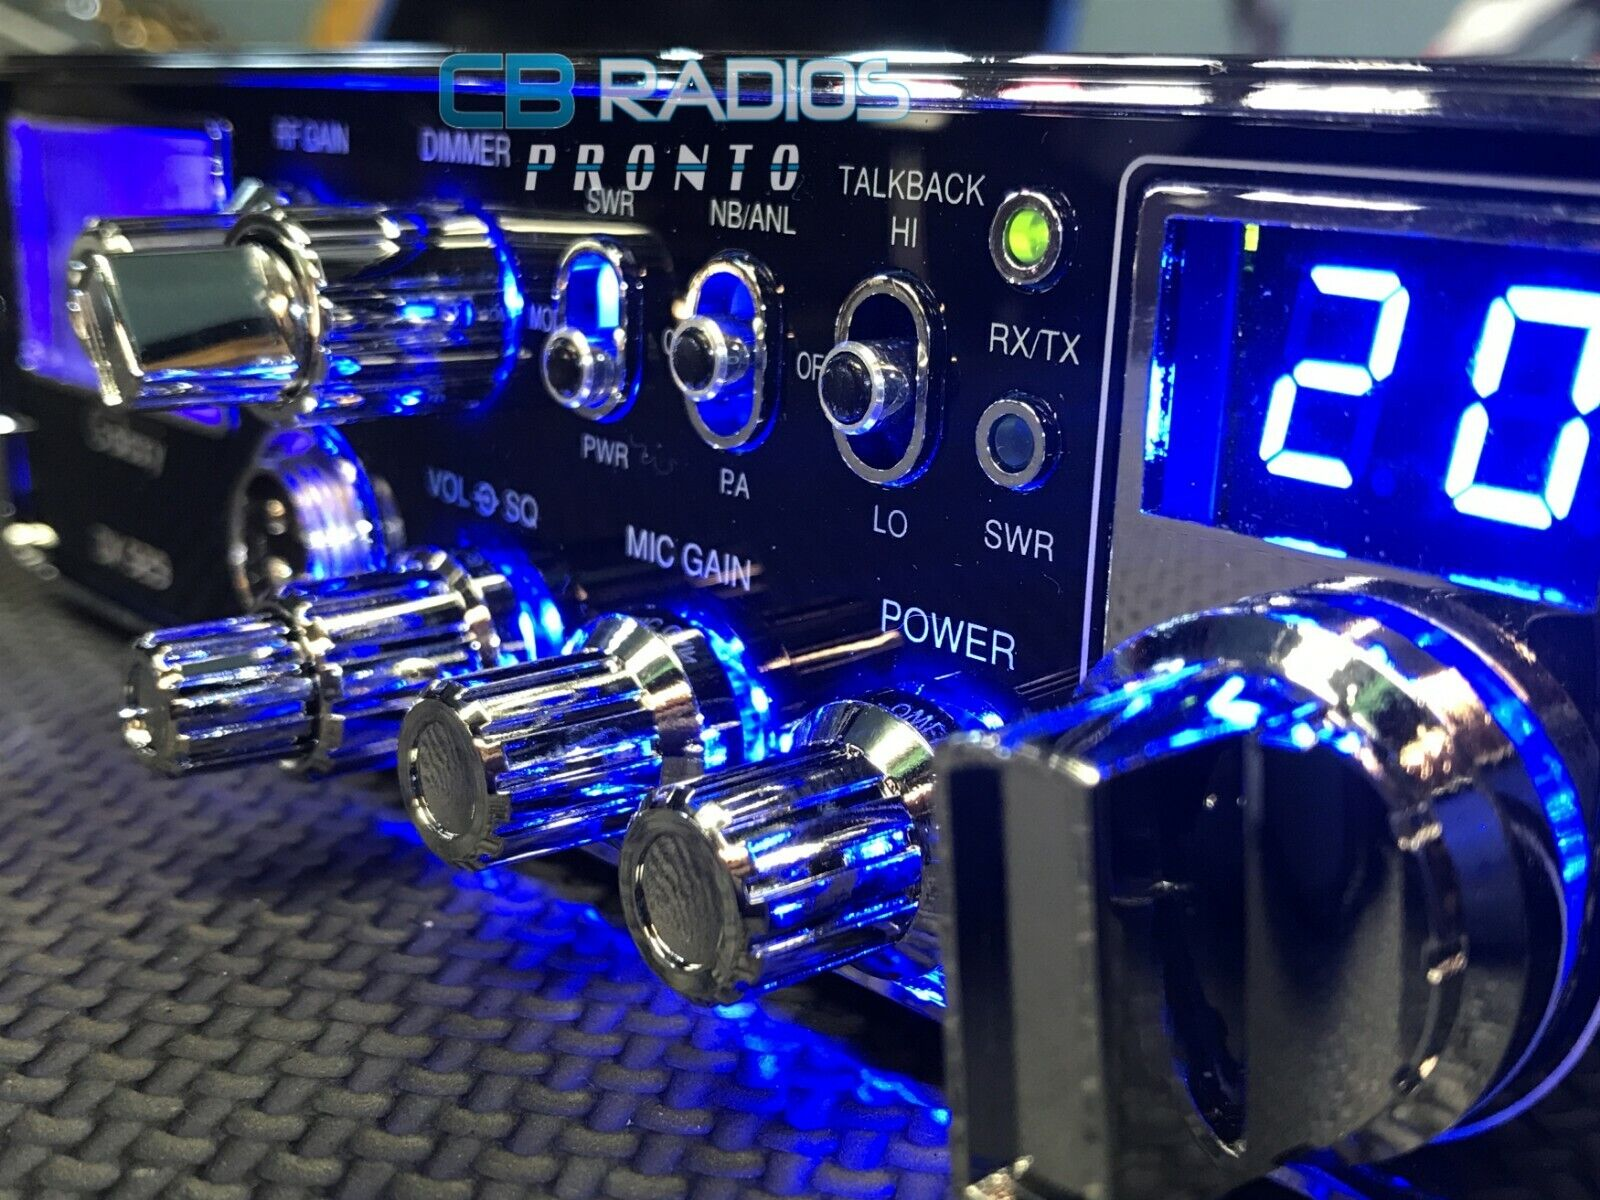 Galaxy DX929 CB Radio - NITRO LED RINGS + PERFORMANCE TUNED* + RECEIVE ENHANCED. Buy it now for 309.99